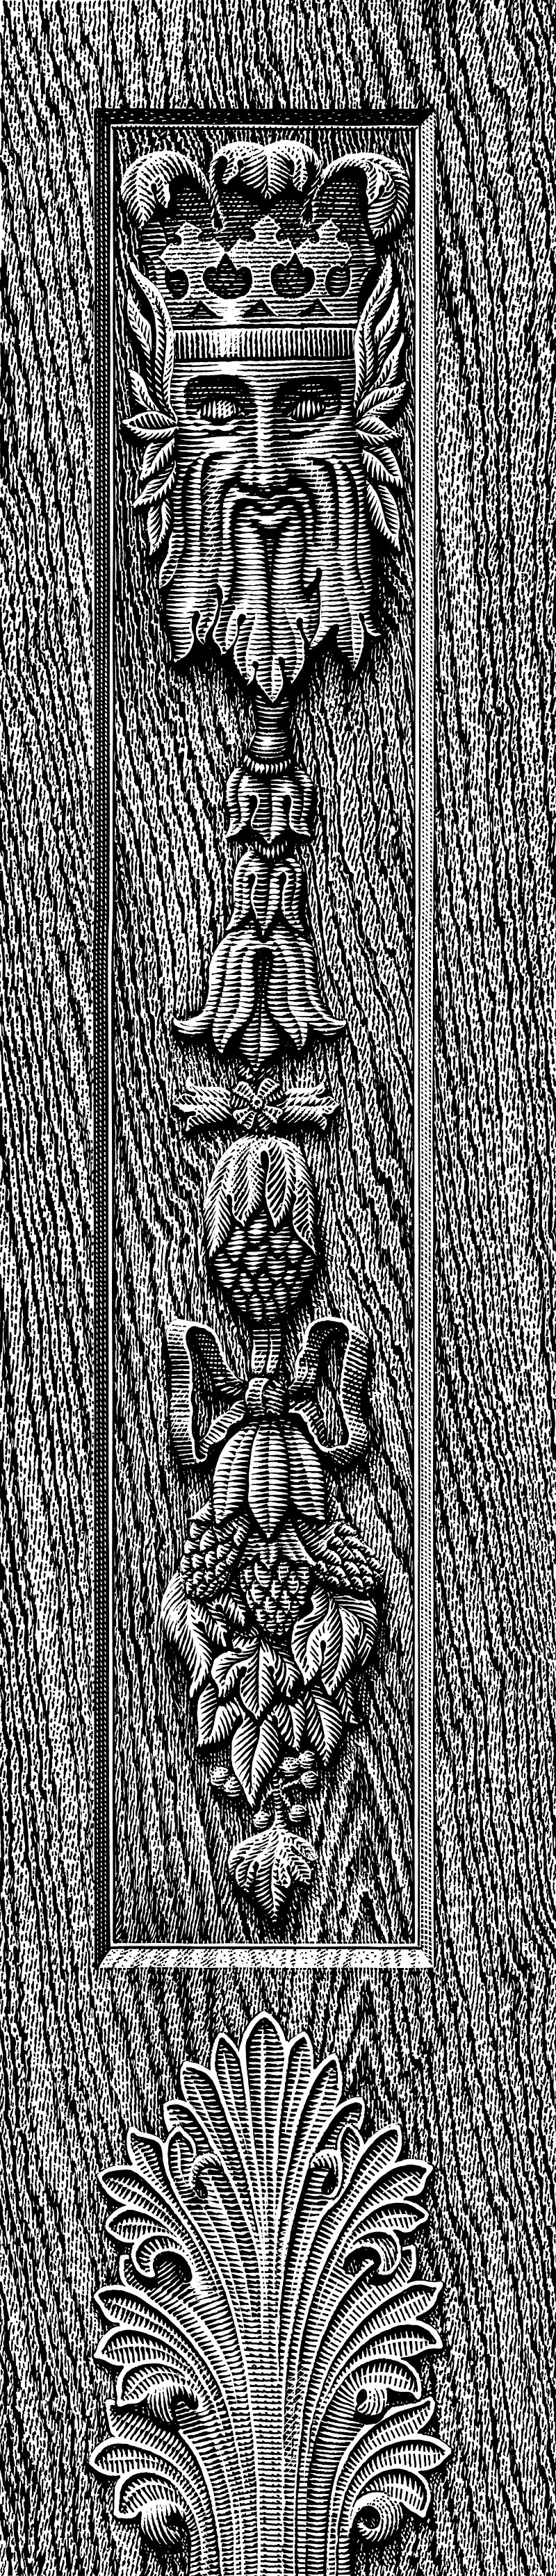 Hops, Barley And Kings Head Carved In Wood